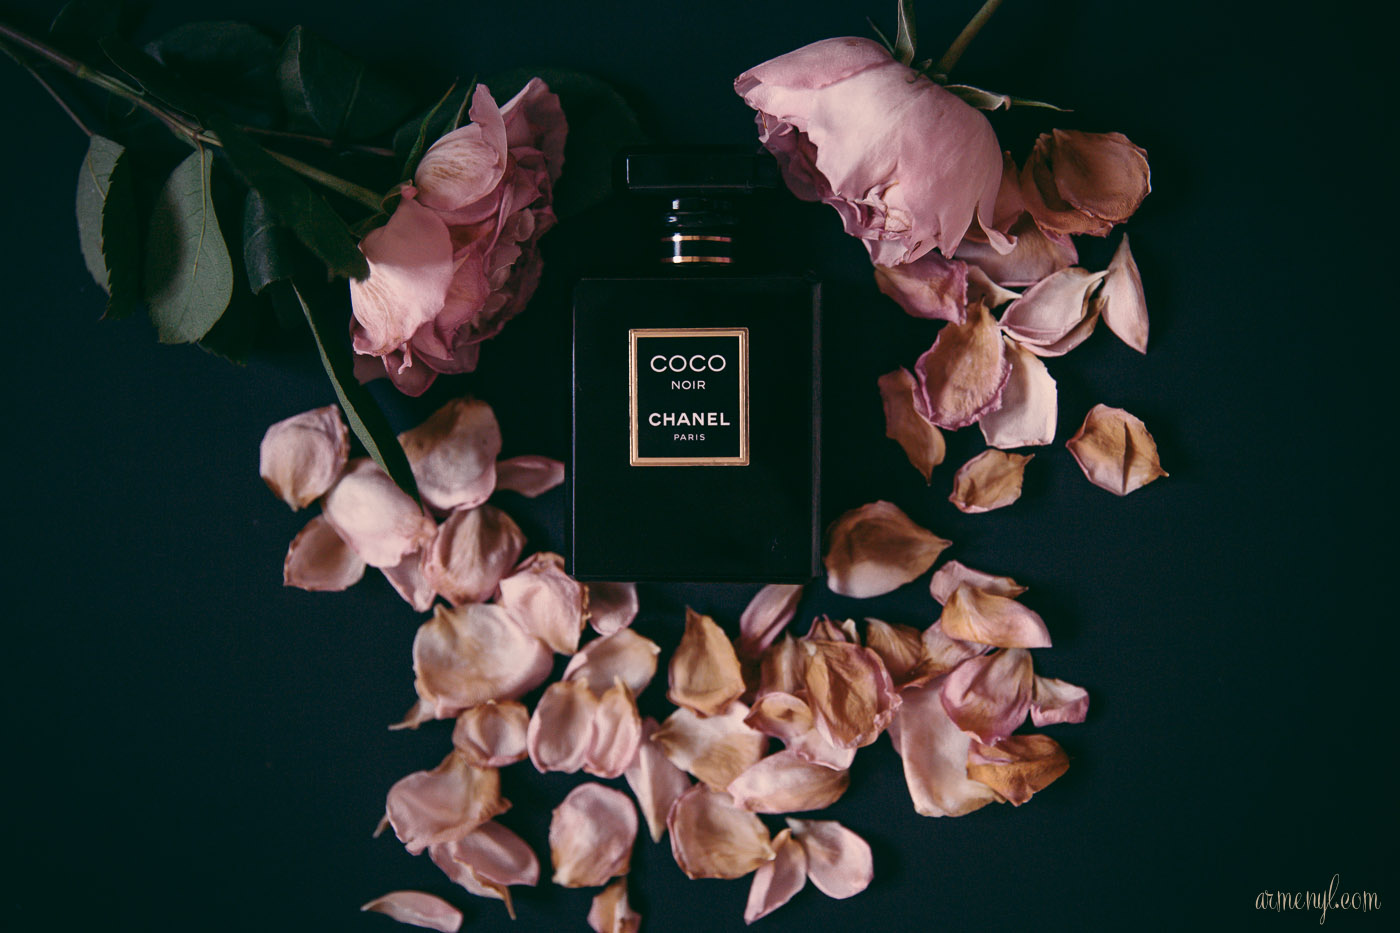 COCO NOIR BY CHANEL armenyl-2016-holiday-gift-ideas-for-women-photo-by-armenyl-com